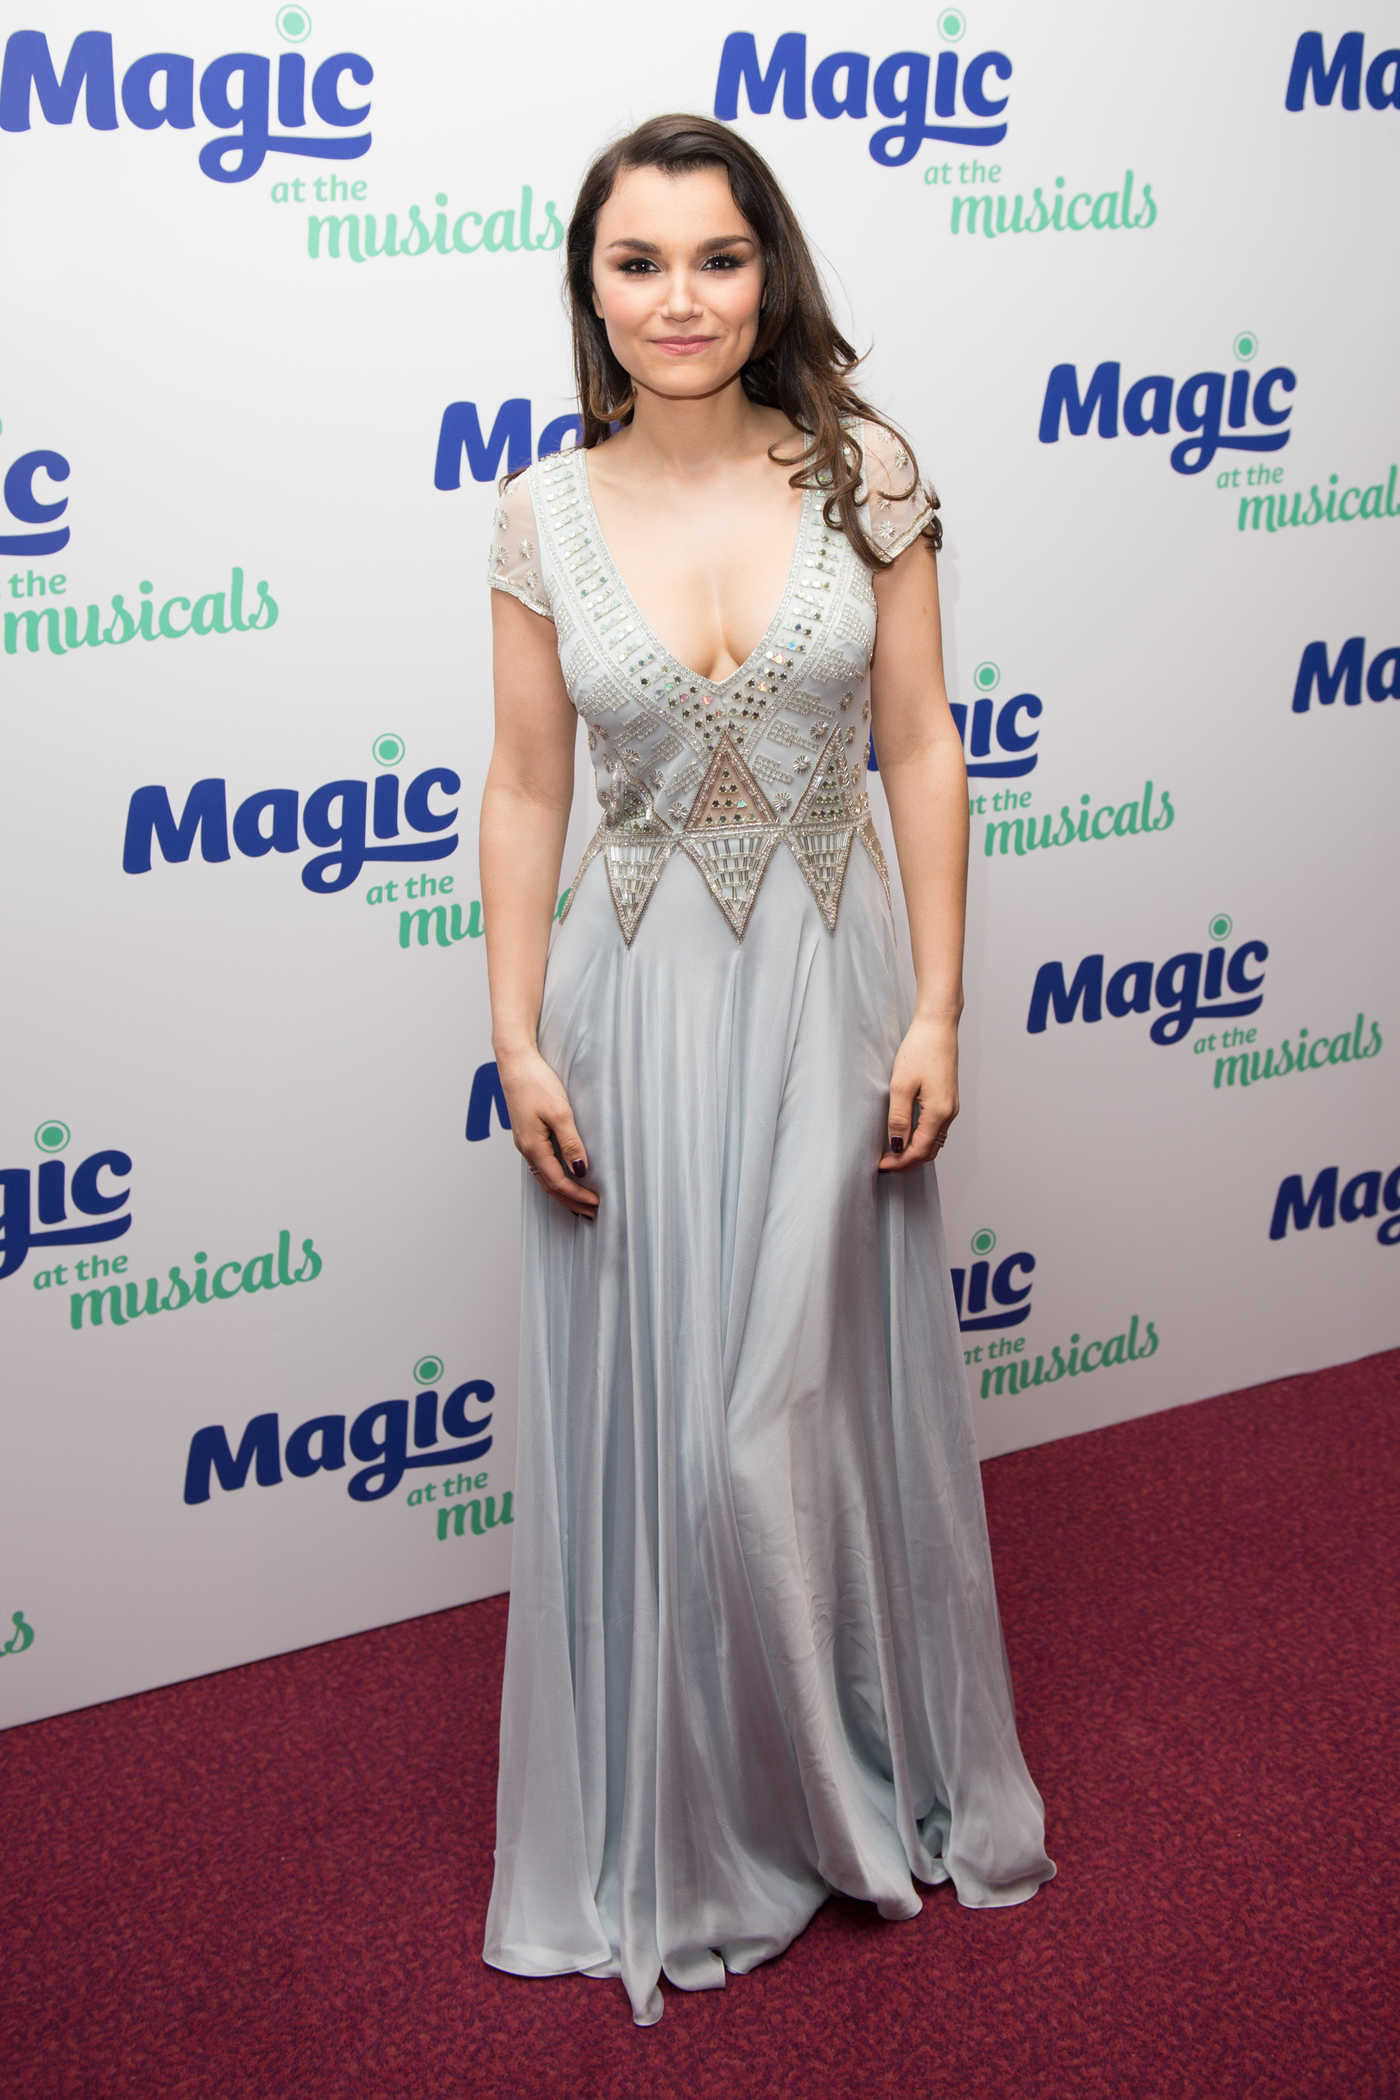 Samantha Barks at the Magic at the Musicals in London 05/04/2017